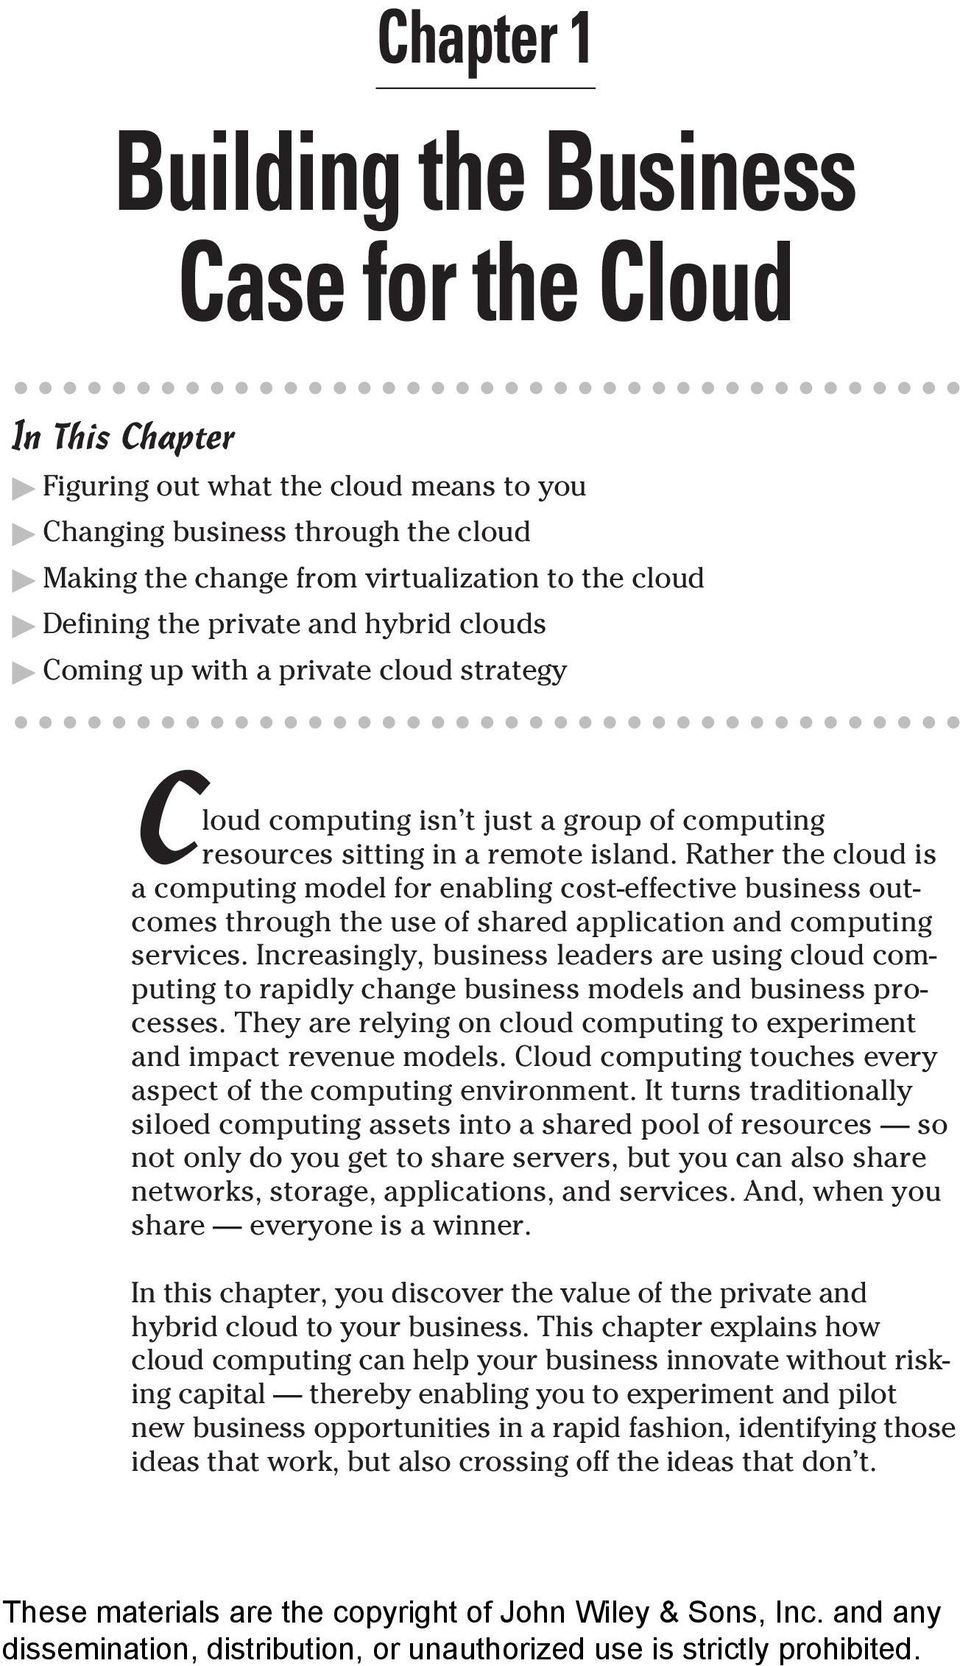 Rather the cloud is a computing model for enabling cost-effective business outcomes through the use of shared application and computing services.